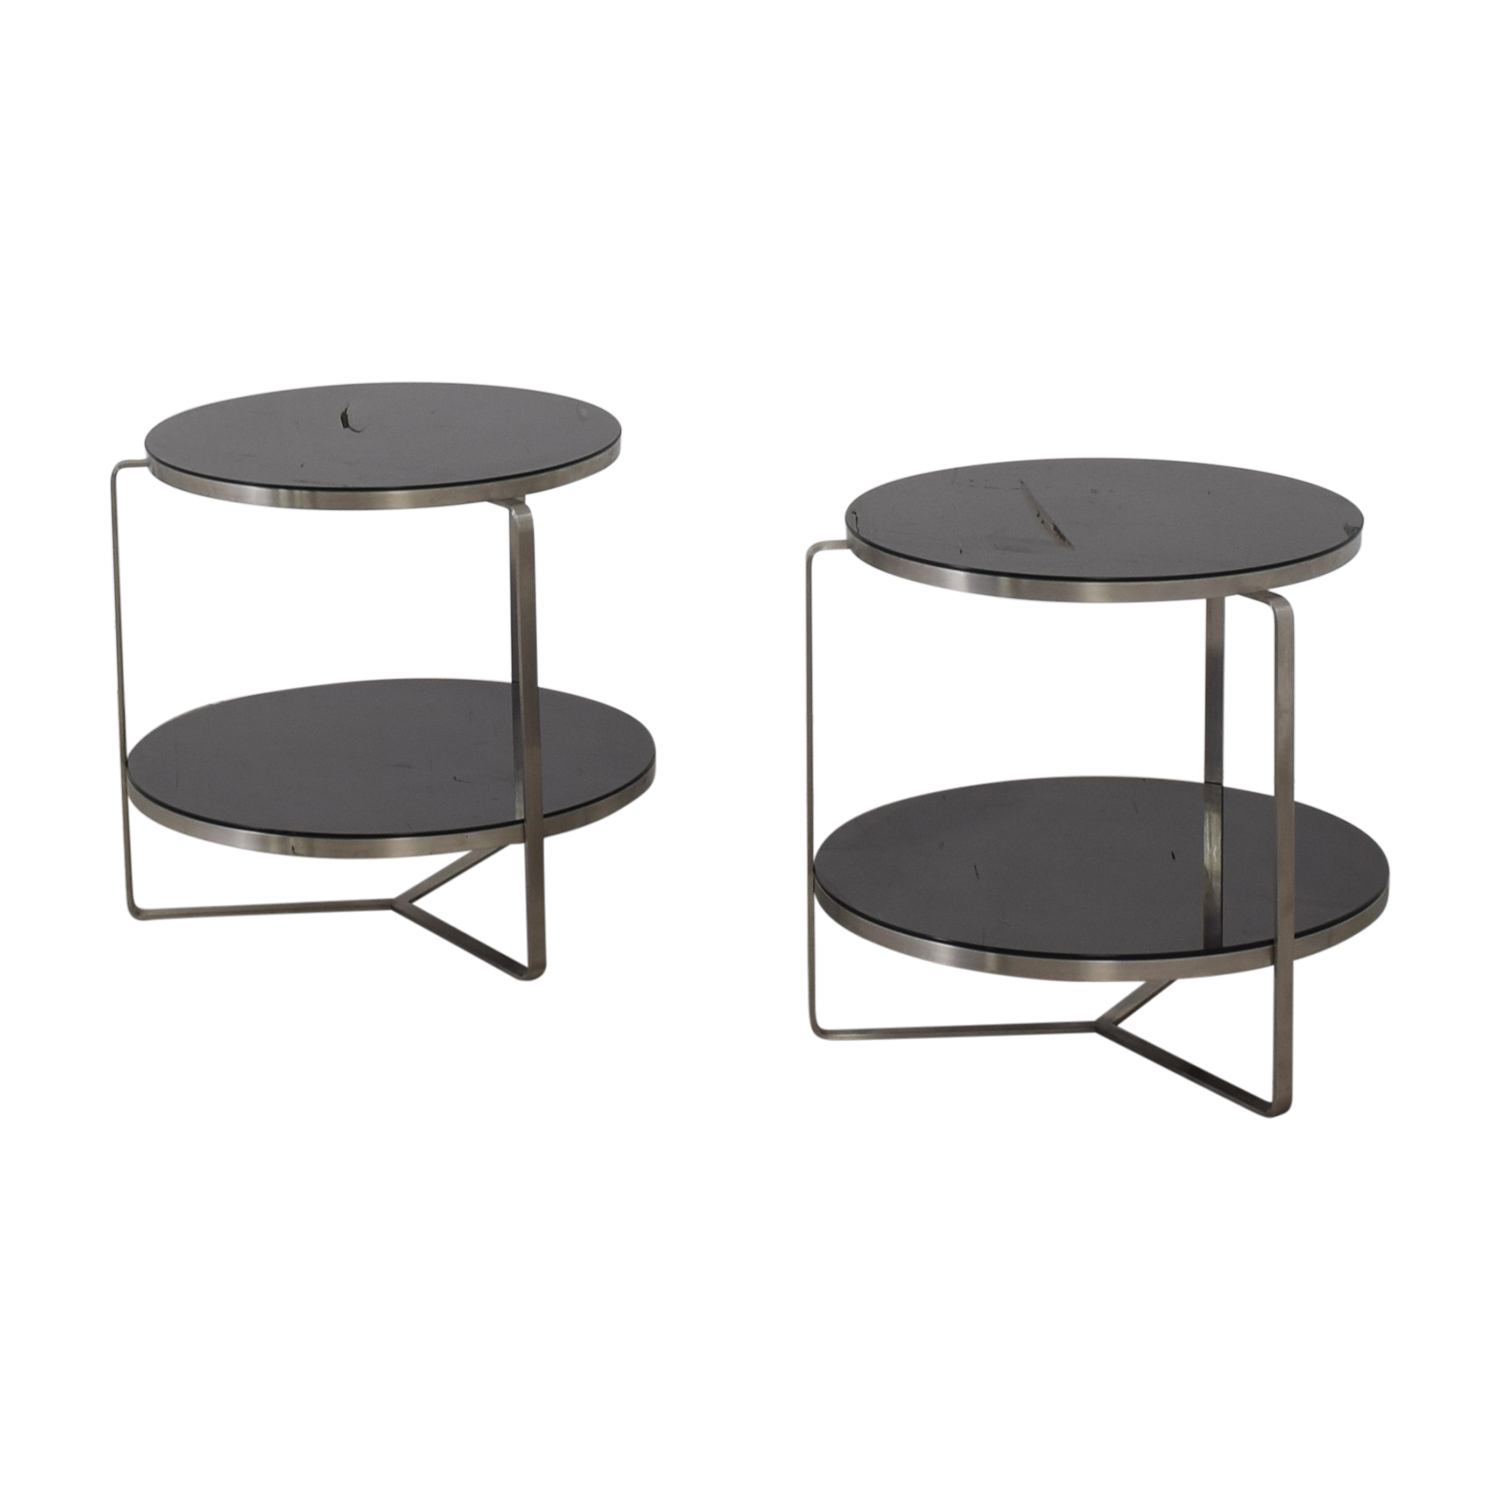 Tui Lifestyle Tui Lifestyle Black Two Tier Glass Side Tables second hand